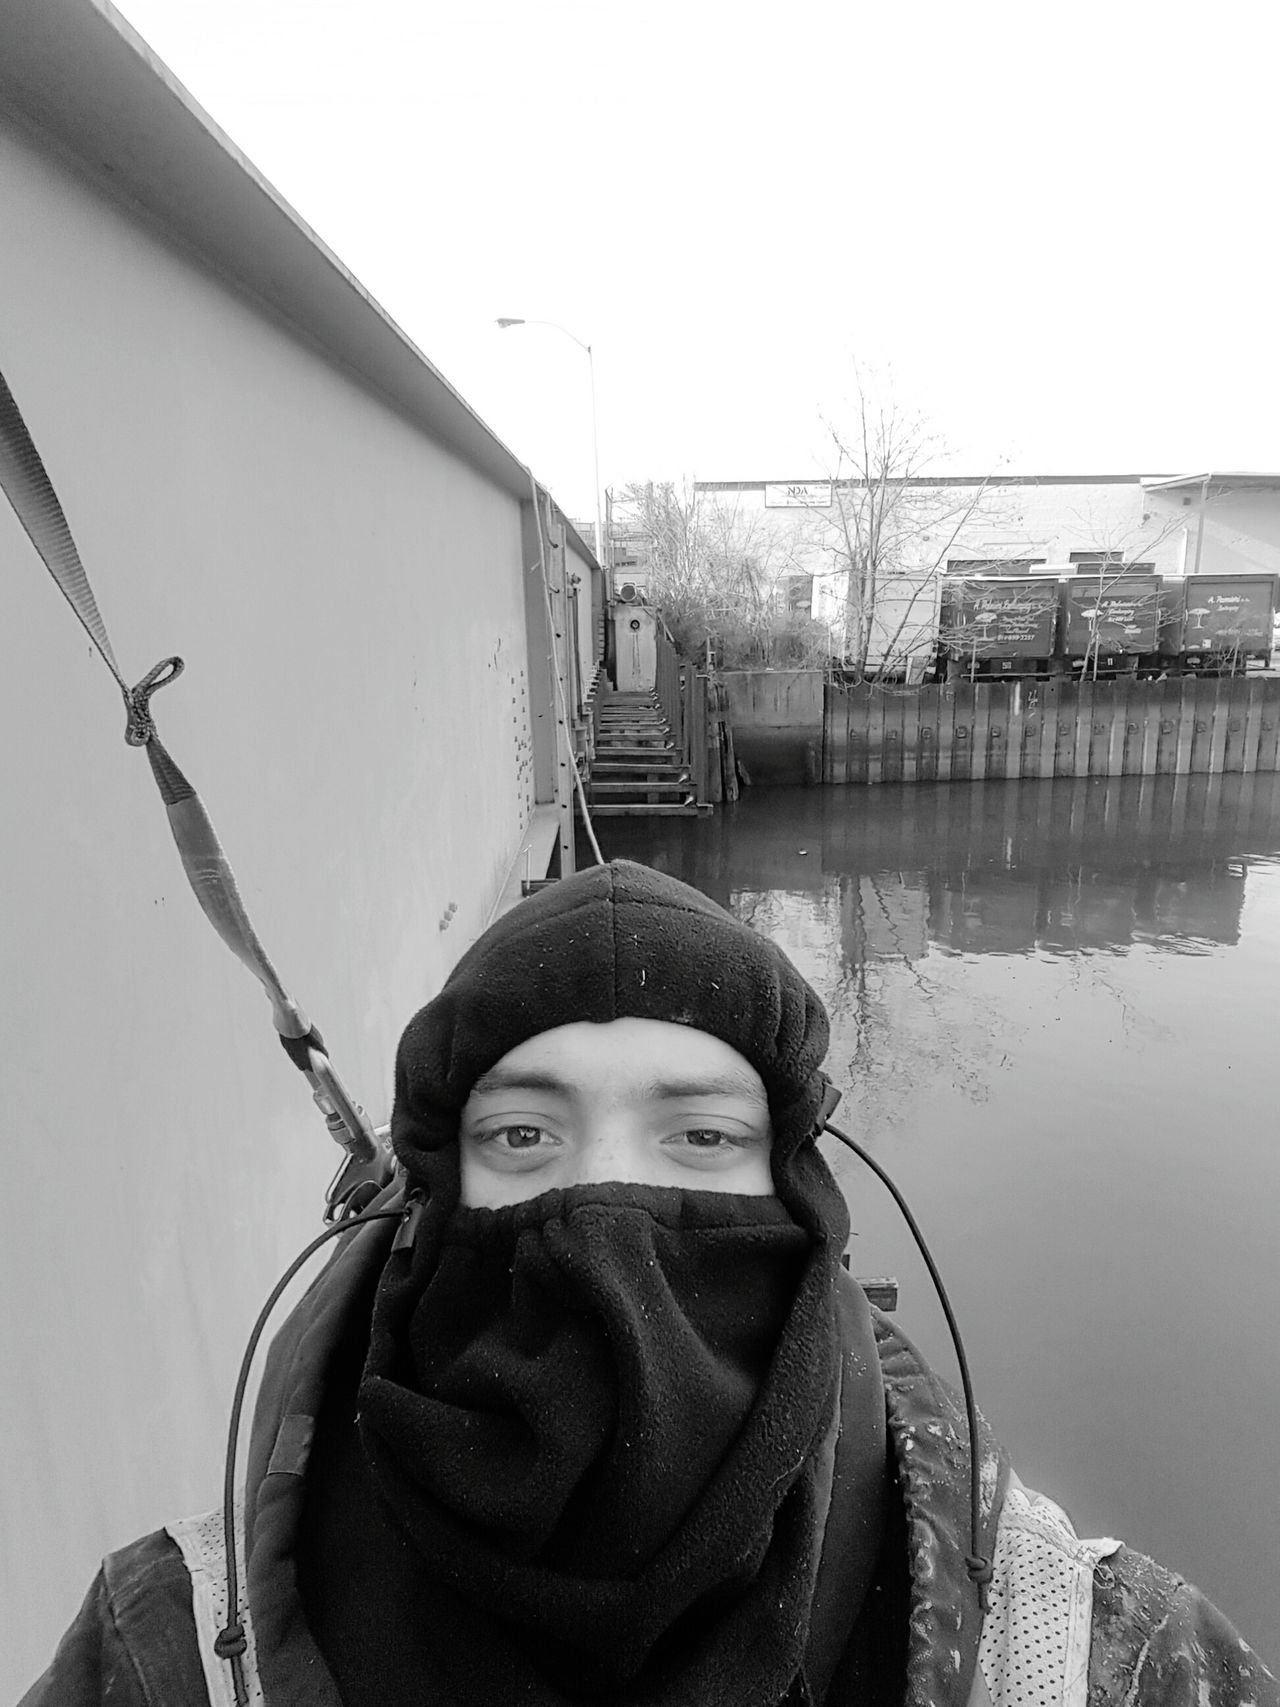 At Work One Person Warm Clothing Winter Knit Hat One Man Only Water Adult Outdoors Self Potrait Blackandwhite Blackandwhite Photography